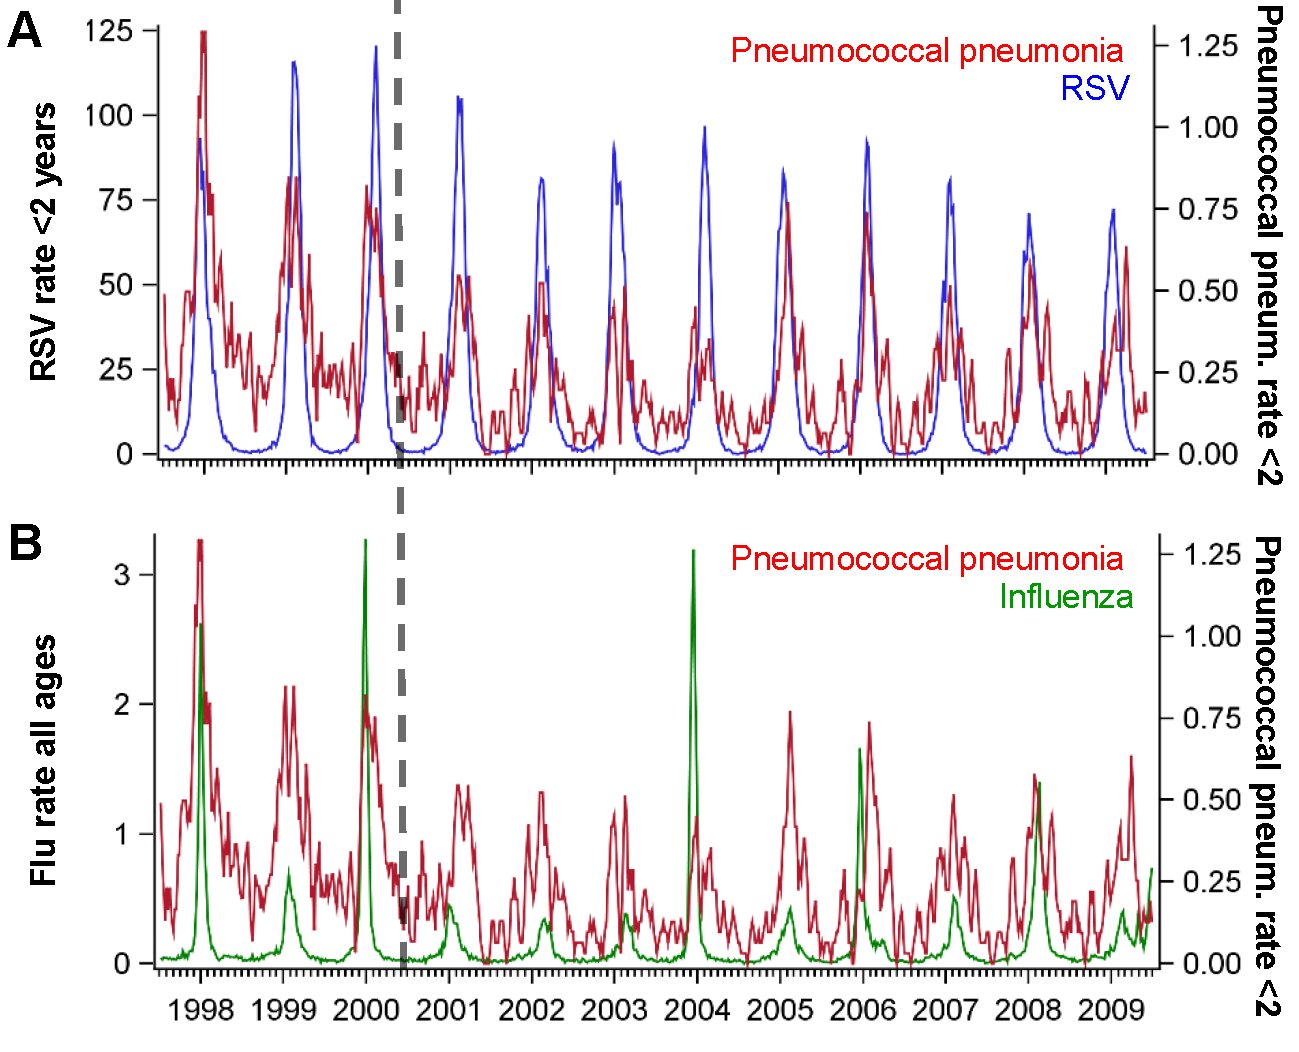 Time series of hospitalizations for pneumococcal pneumonia, RSV, and influenza in California.